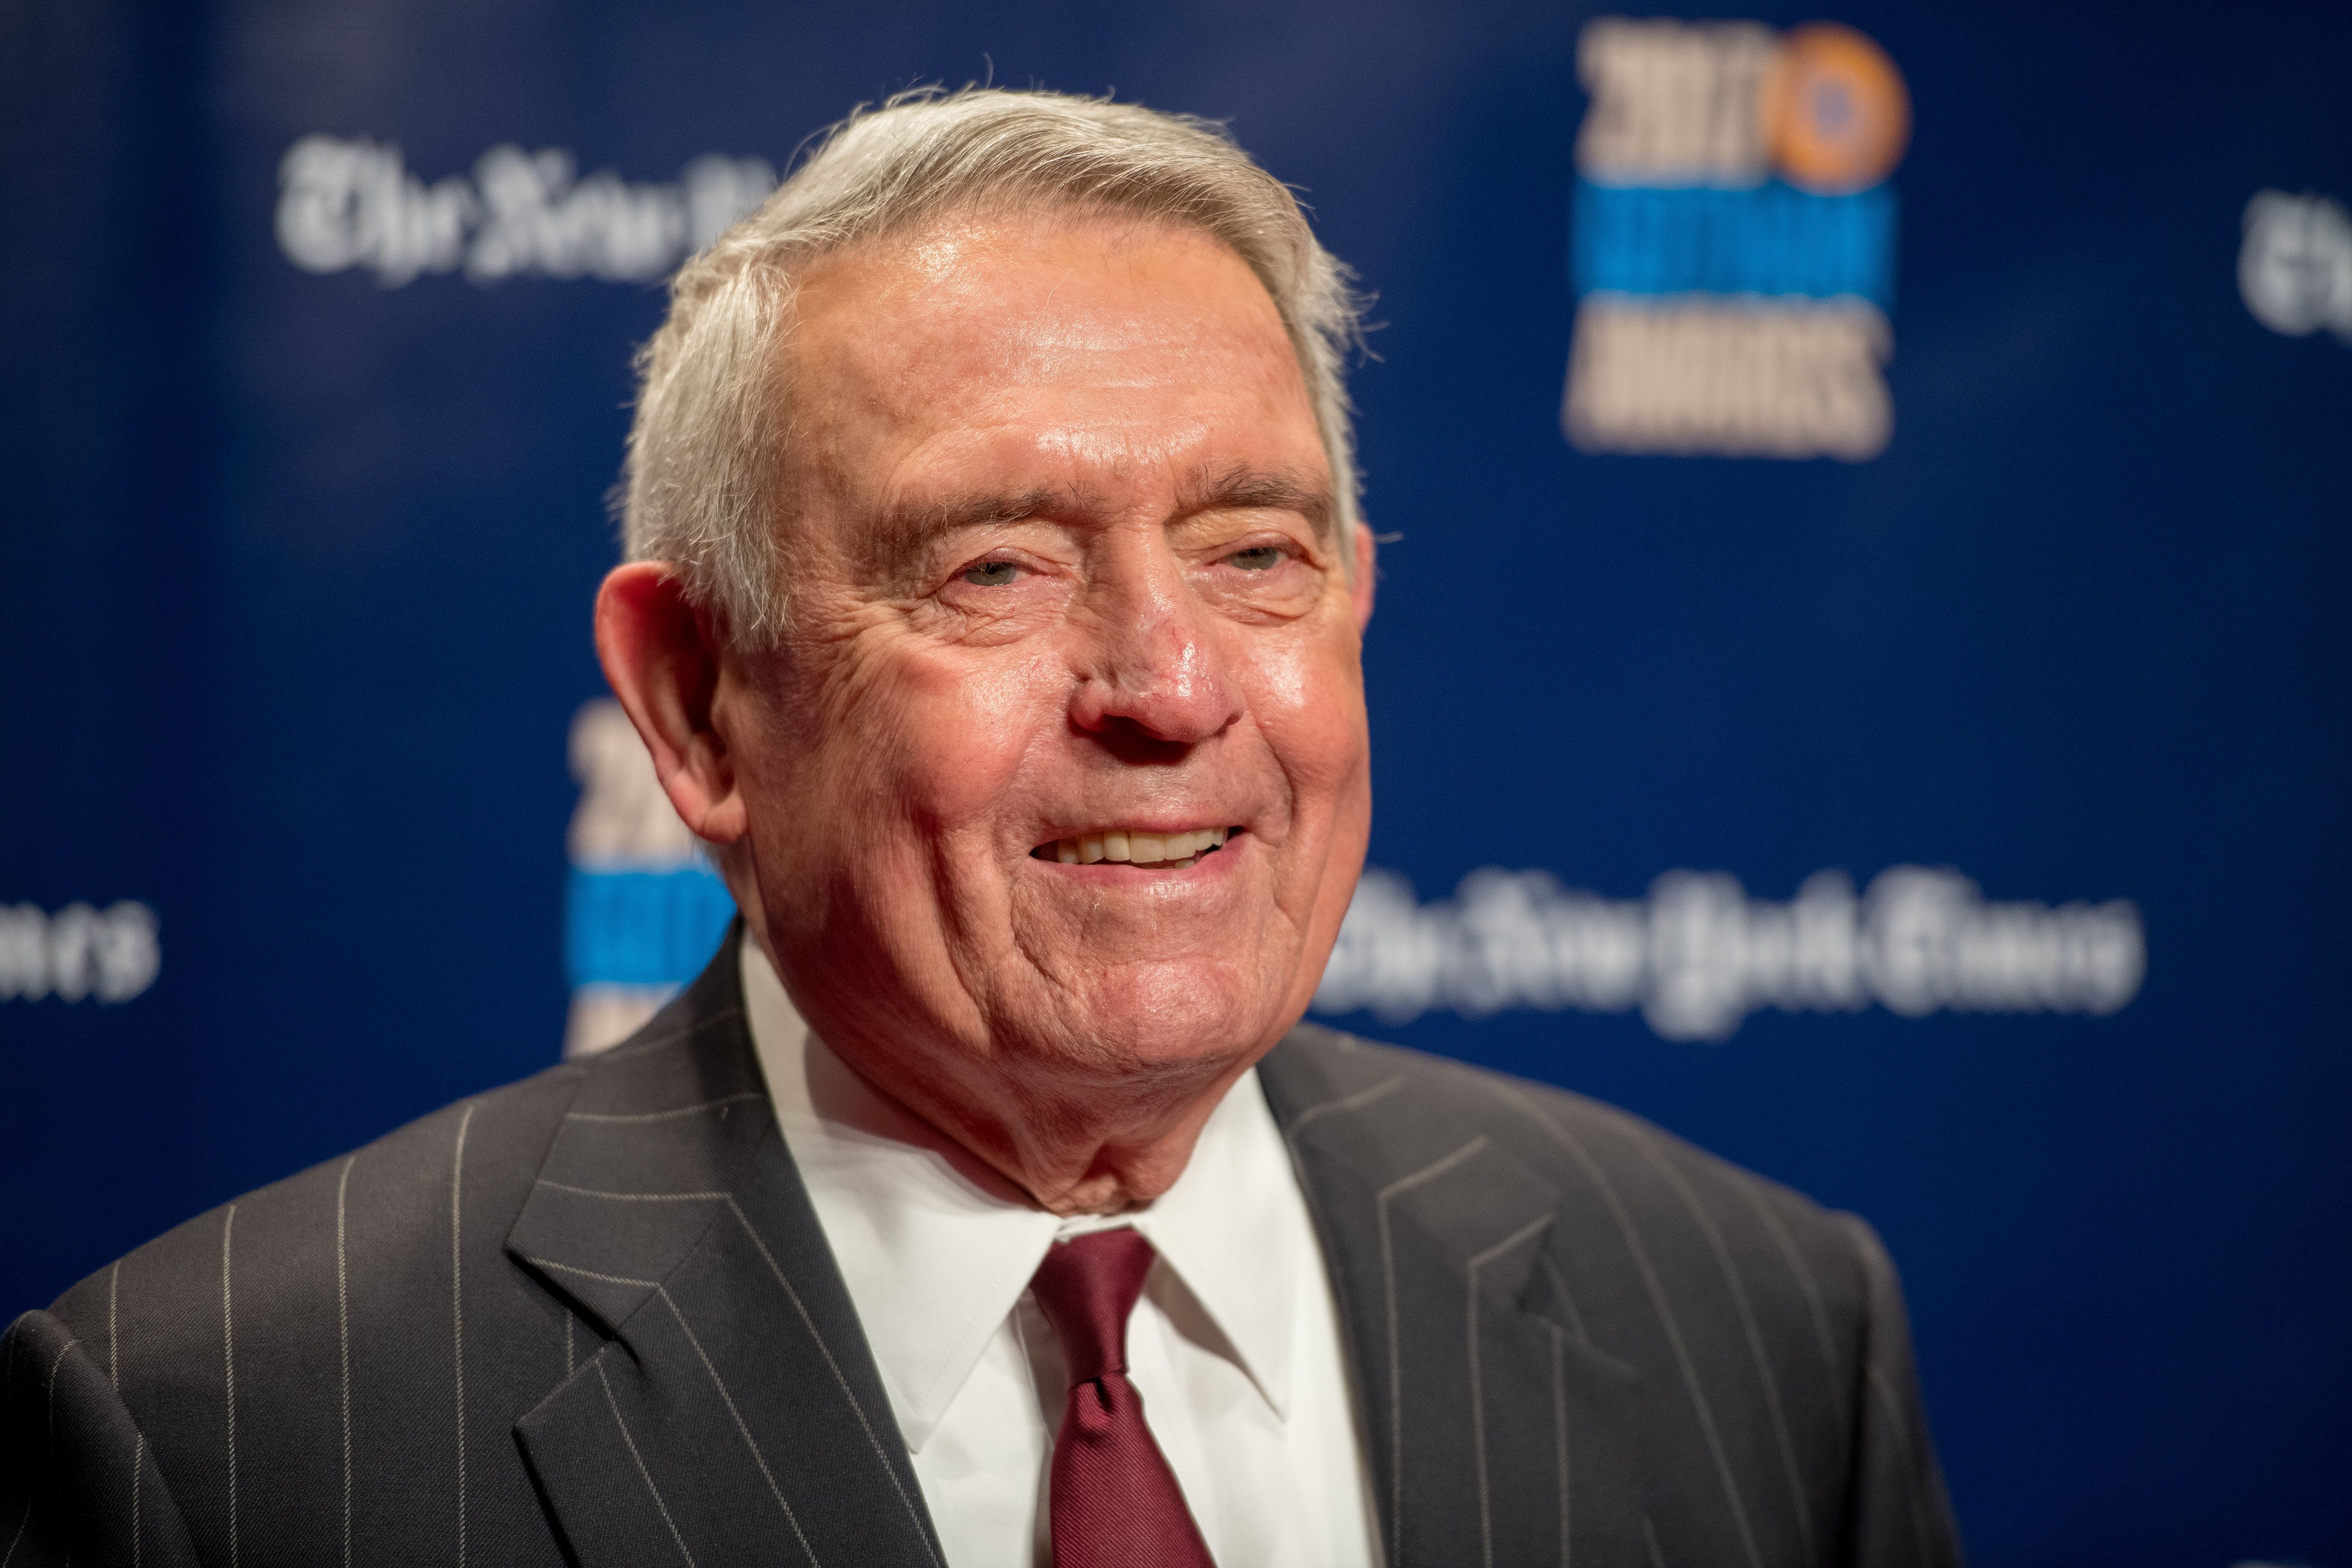 NEW YORK, NY - NOVEMBER 27:  Dan Rather attends the 2017 IFP Gotham Awards at Cipriani Wall Street on November 27, 2017 in New York City.  (Photo by Roy Rochlin/FilmMagic)